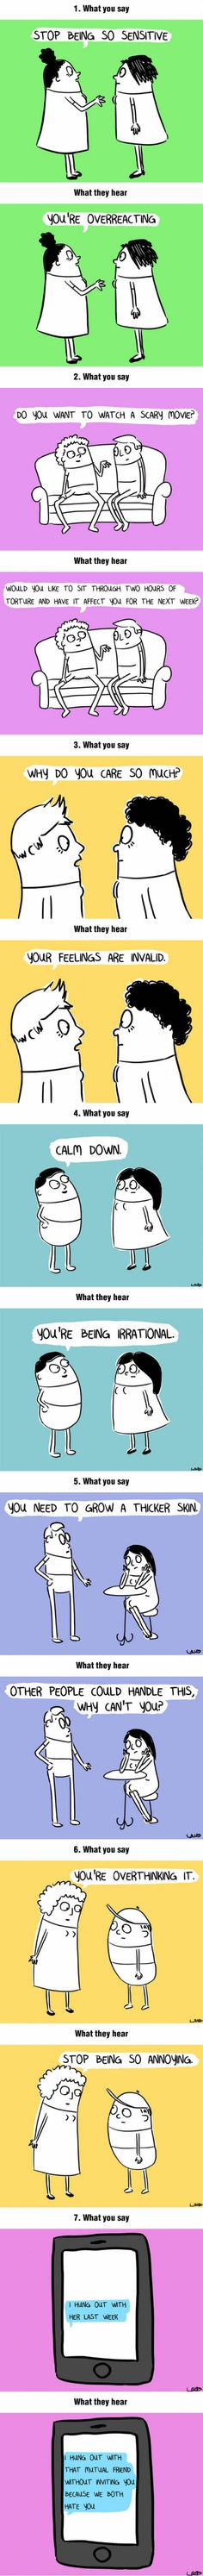 What You Say To A Highly Sensitive Person And What They Hear (By Loryn Brantz)